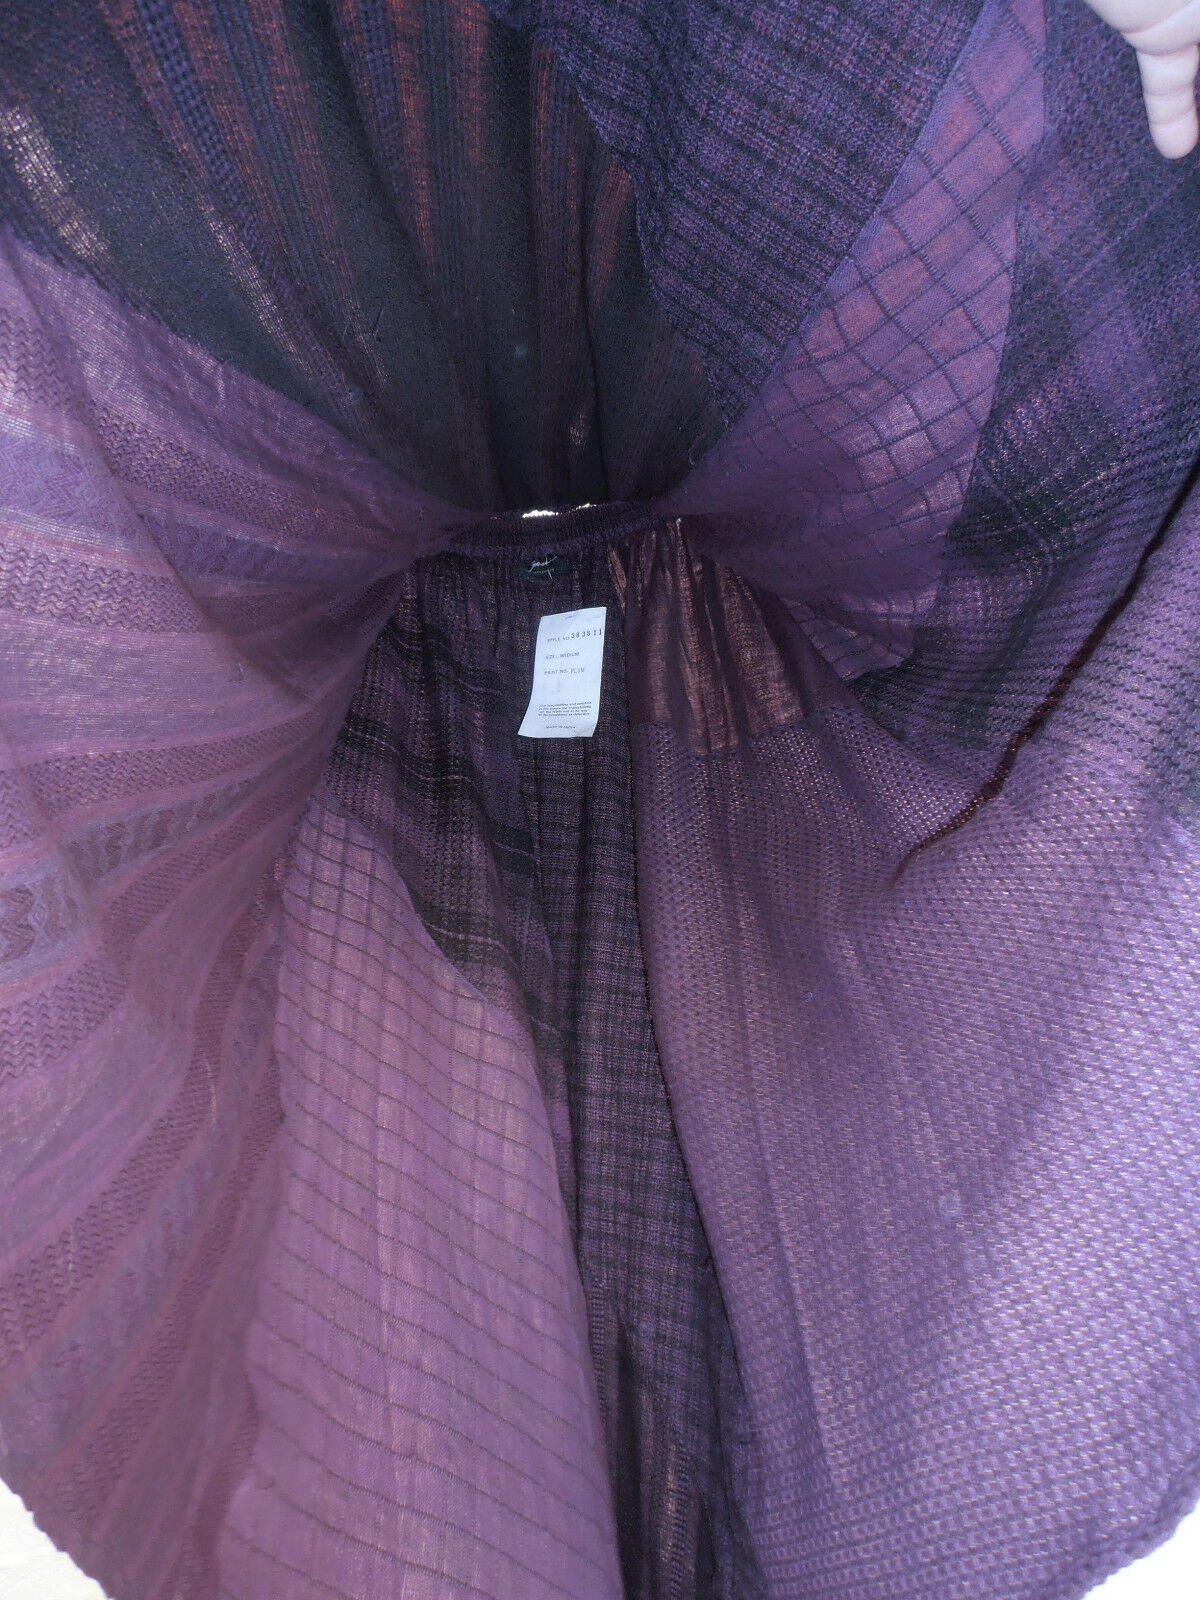 Plum SKIRT renaissance style full skirt PURPLE 90S SHADES TIE DYED MATERIALS NWT